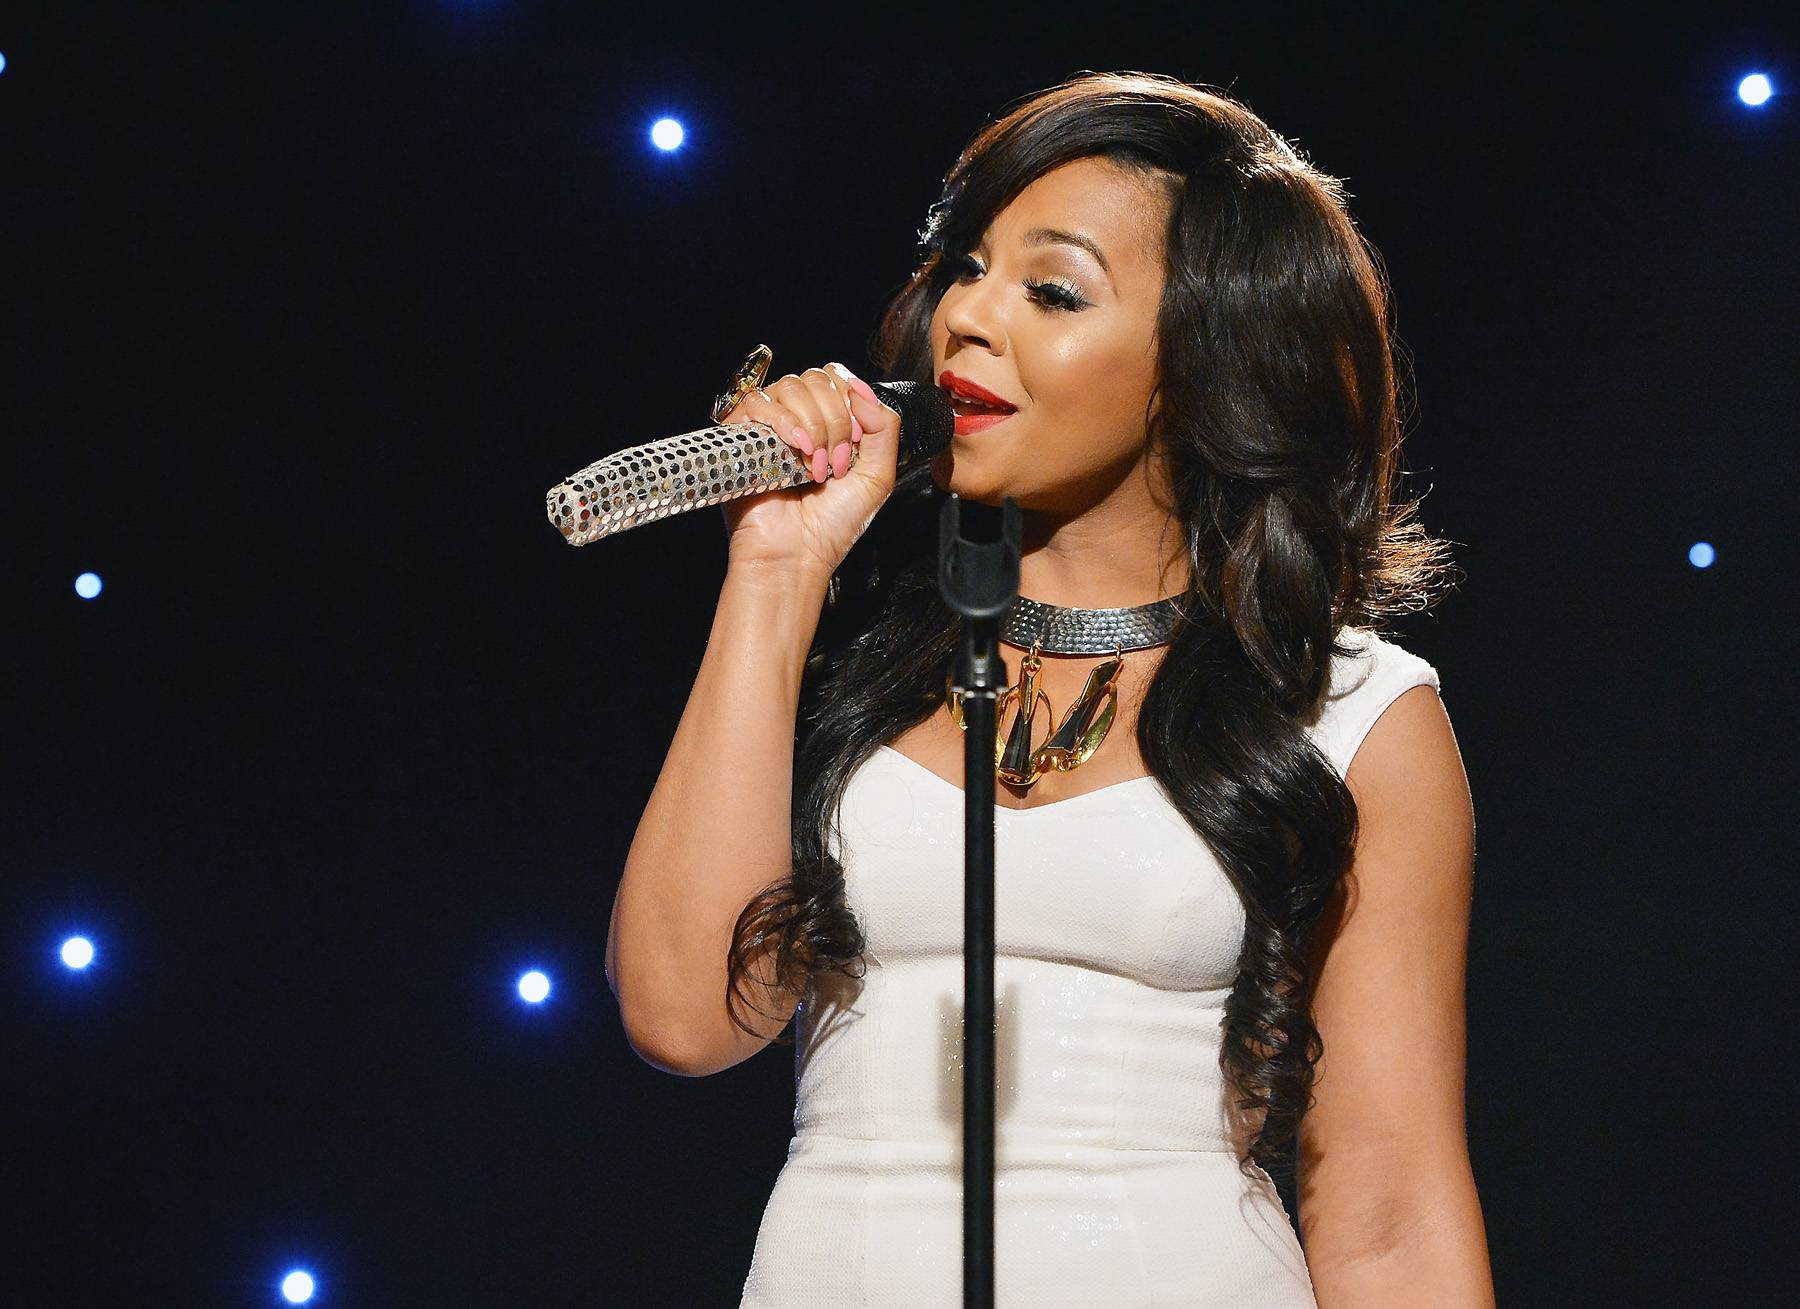 """Best Independent R&B/Soul Performance: Ashanti - """"Never Should Have"""" - After a five-year hiatus from music, the proclaimed Princess of R&B resurfaced with this self-penned reflection of life after dealing with a no-good lover.  (Photo: Slaven Vlasic/Getty Images)"""